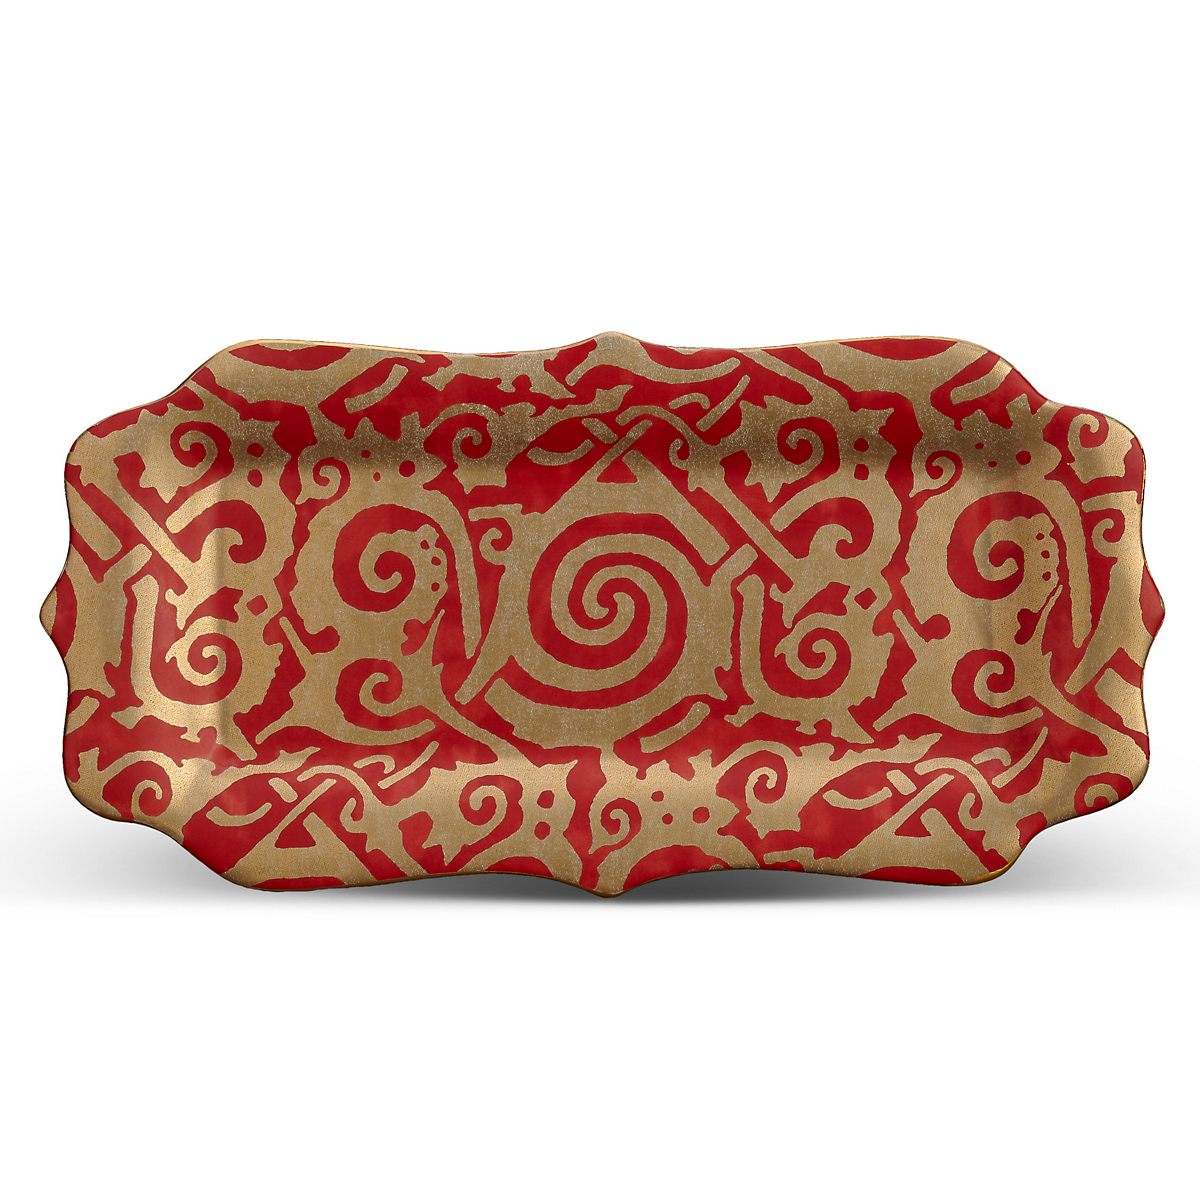 L'Objet Fortuny Maori Red Platter, Medium